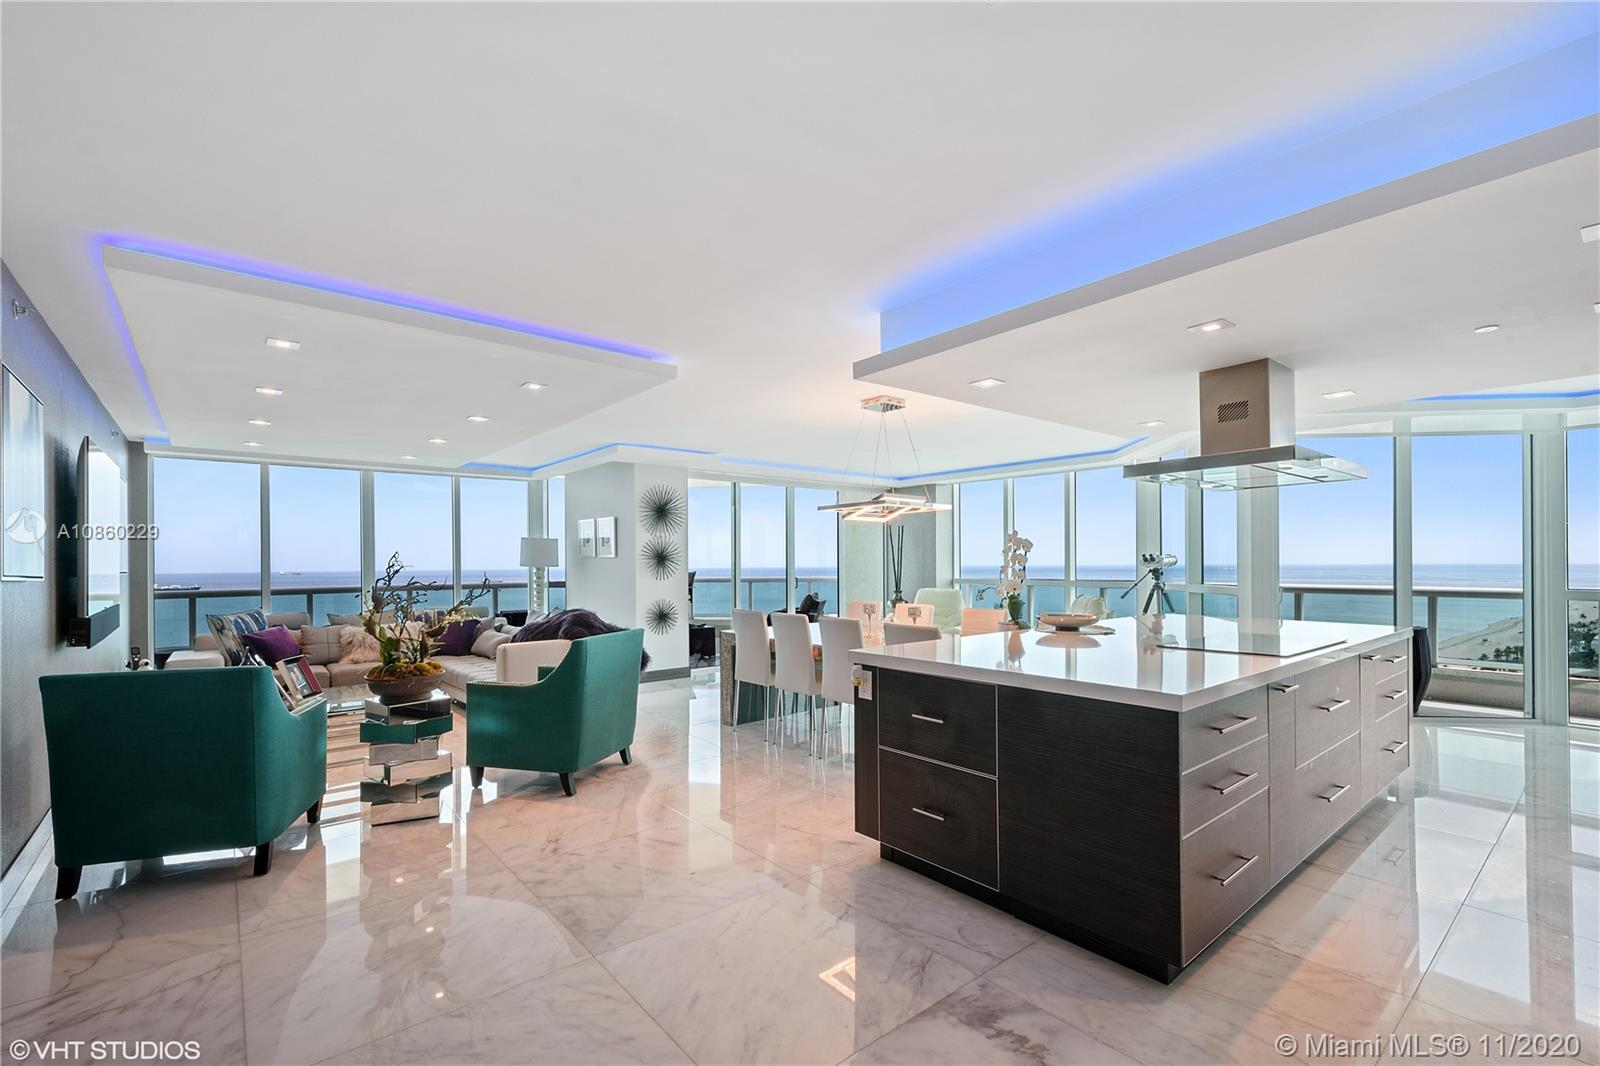 PRIME LOCATION ON A1A WITH PANORAMIC SE OCEAN VIEWS ON THE 24TH FLOOR! THIS BEAUTIFUL TURNKEY CONDO IS ONE OF THE VERY FEW HI-RISE BUILDINGS ON A1A!  THIS STUNNING CORNER CONDO BOASTS 3,000 SF WITH 180 DEGREE FLOOR TO CEILING VIEWS OF THE OCEAN, INTRACOASTAL, AND DOWNTOWN LAS OLAS! STEPS FROM THE BEACH, ENTERTAINMENT DISTRICT, SHOPS, MARINA & RESTAURANTS! CUSTOM CONDO FULLY REMODELED FROM THE GROUND UP WITH SPACIOUS OPEN KITCHEN WITH ATTACHED WATERFALL ONYX DINING TABLE FOR 8! MEDIA RM  WITH 125 INCH SCREEN, SURROUND SOUND SYSTEM, SMARTHOME, MARBLE FLOORS, ALL ROOMS WITH VIEWS, NO EXPENSE SPARED! 5 STAR BUILDING OFFERS 24 HR SECURITY, VALET, CONCIERGE, RESORT-STYLE POOL WITH CHAIR SERVICE, BBQ GRILLS, GYM WITH ONSITE CLASSES, PARTY ROOM, EXTRA STORAGE & PARKING AVAILABLE! ONE OF A KIND!